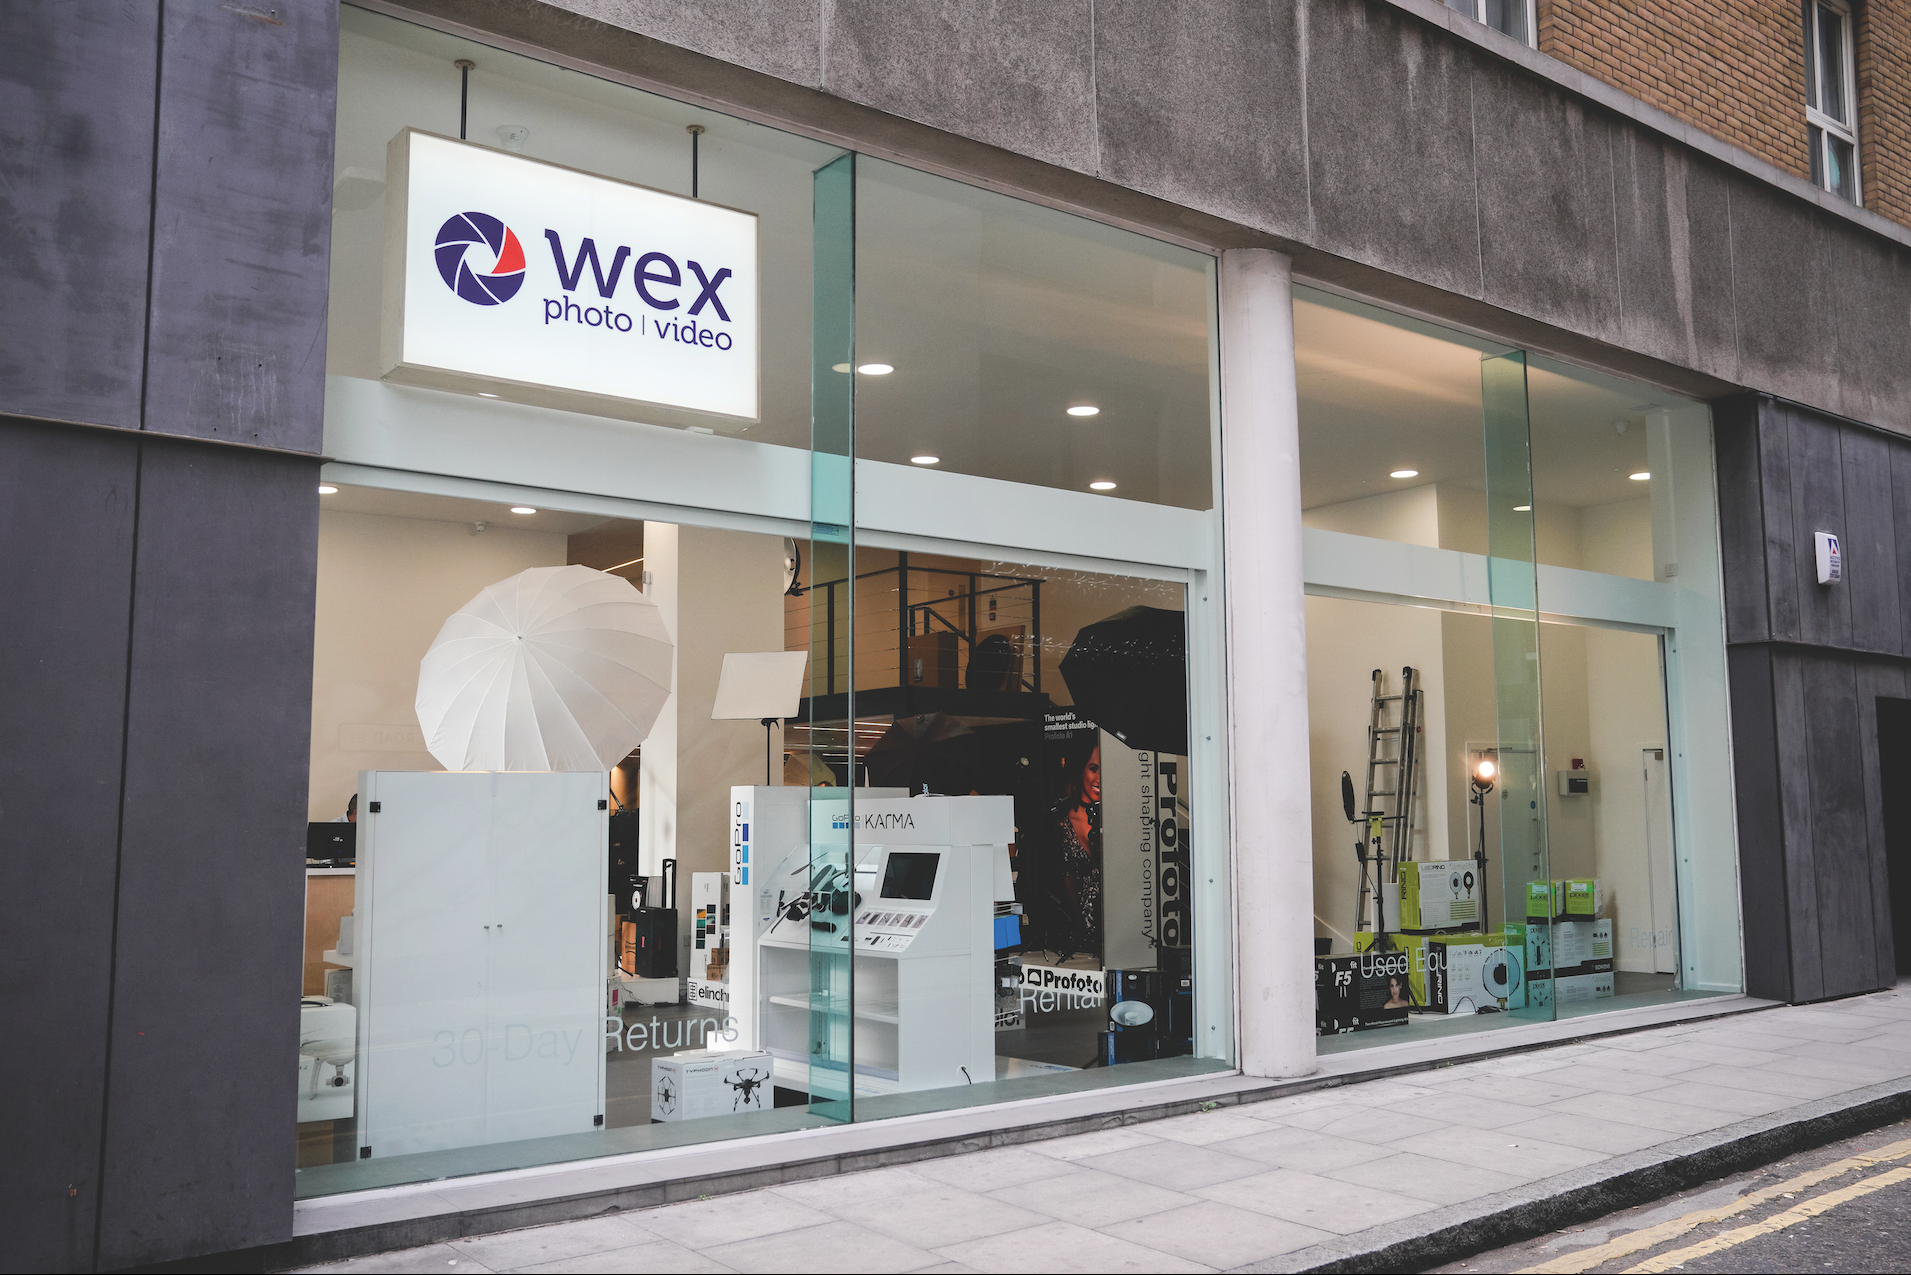 UK's largest camera shop opened by Wex Photo Video